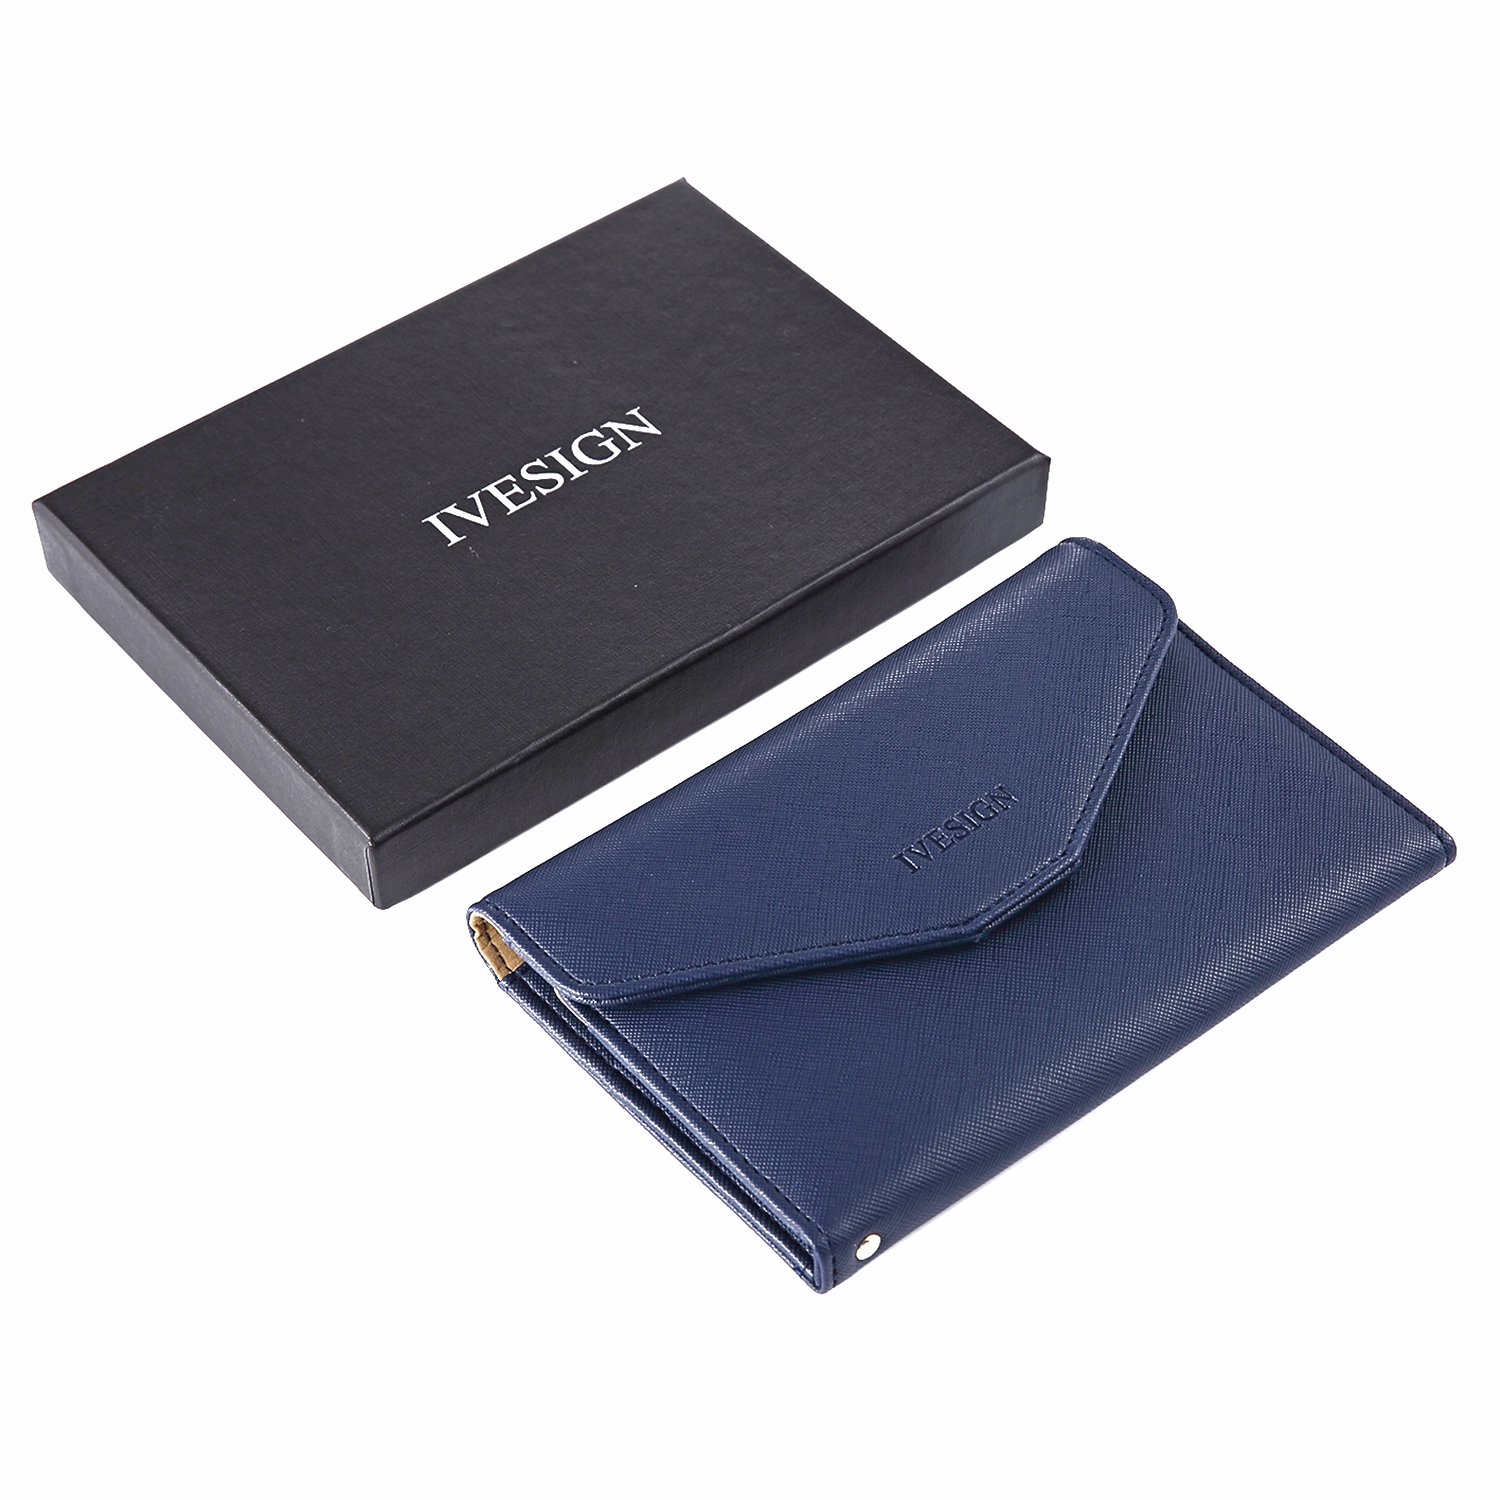 IVESIGN Travel Passport Wallet Trifold Envelope Document Organizer Holder (Blue)